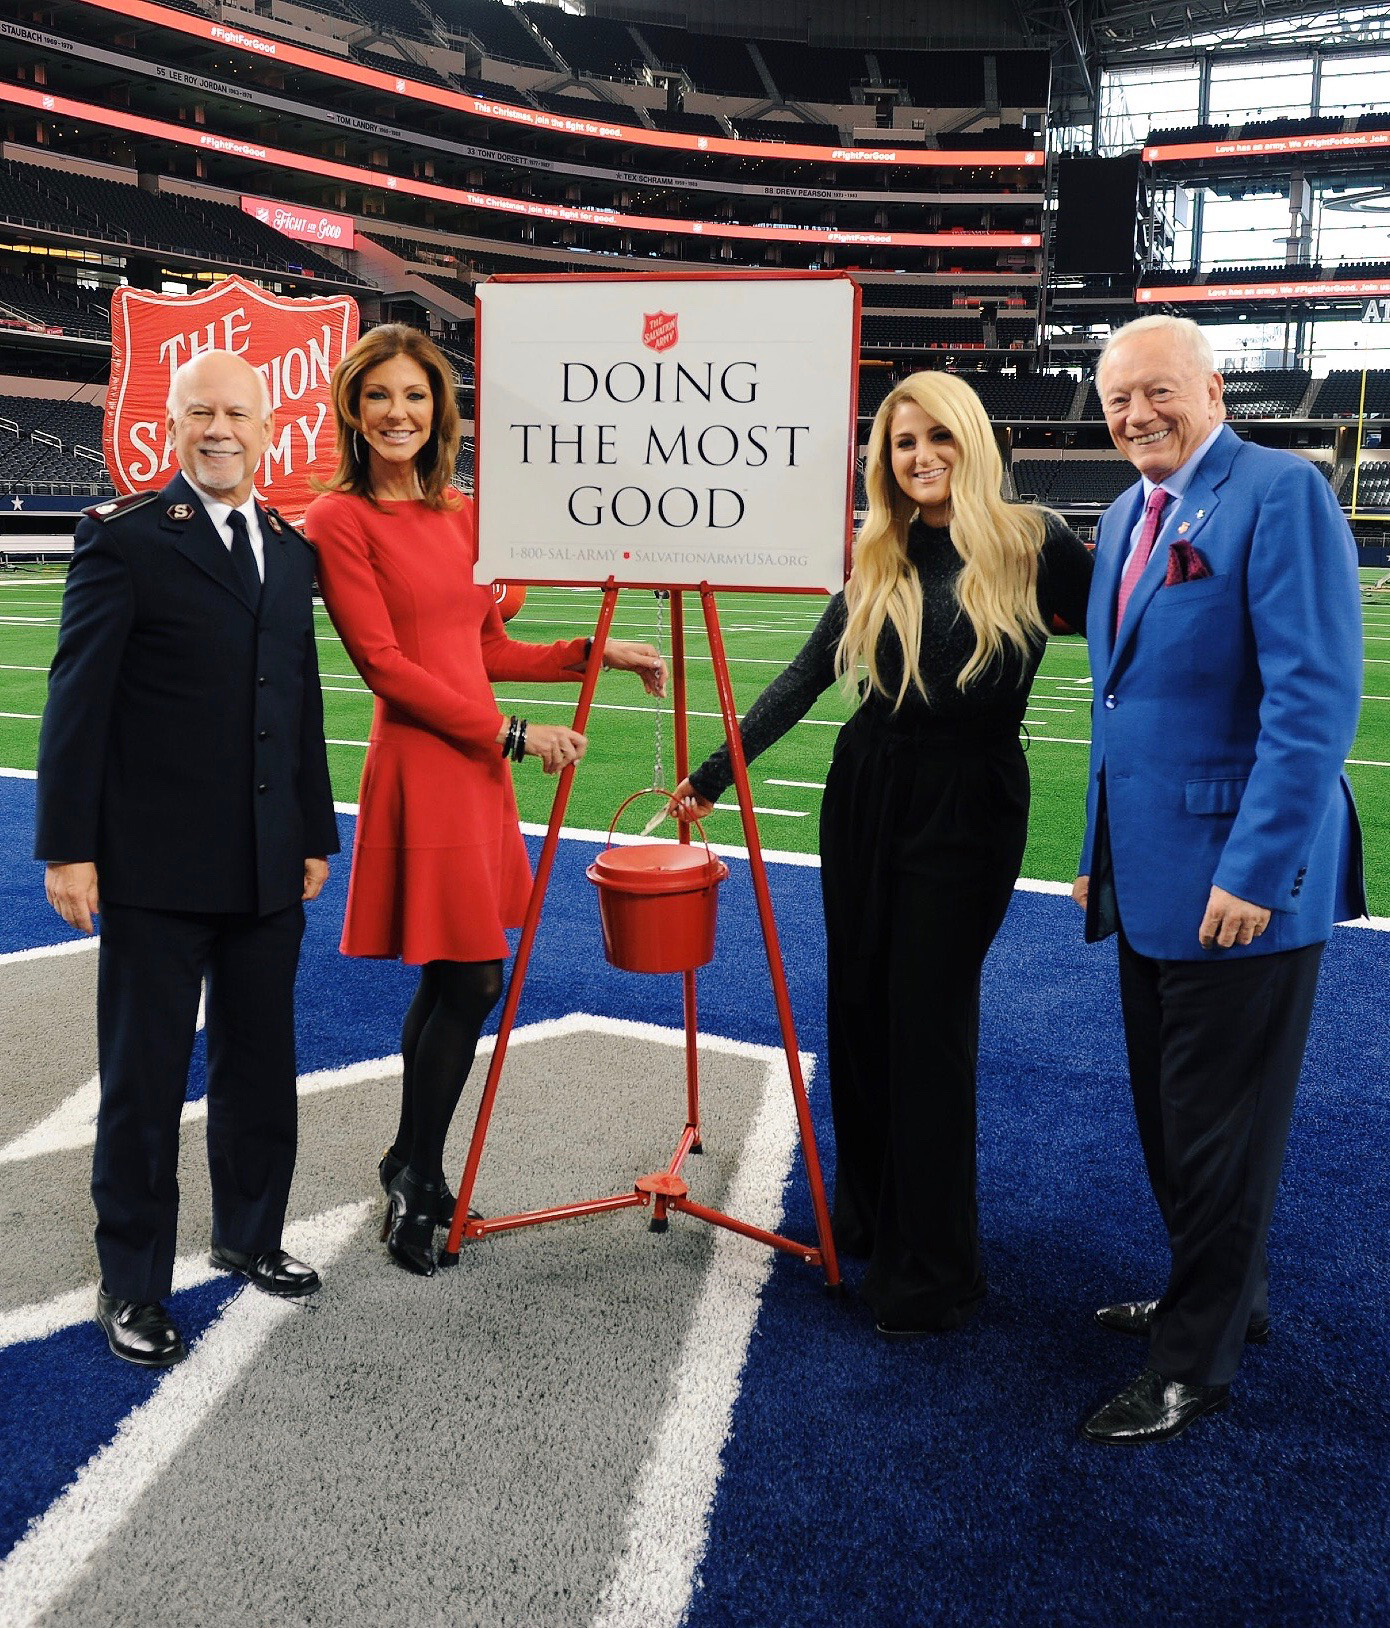 The Salvation Army and the Dallas Cowboys have been partners for 22 years